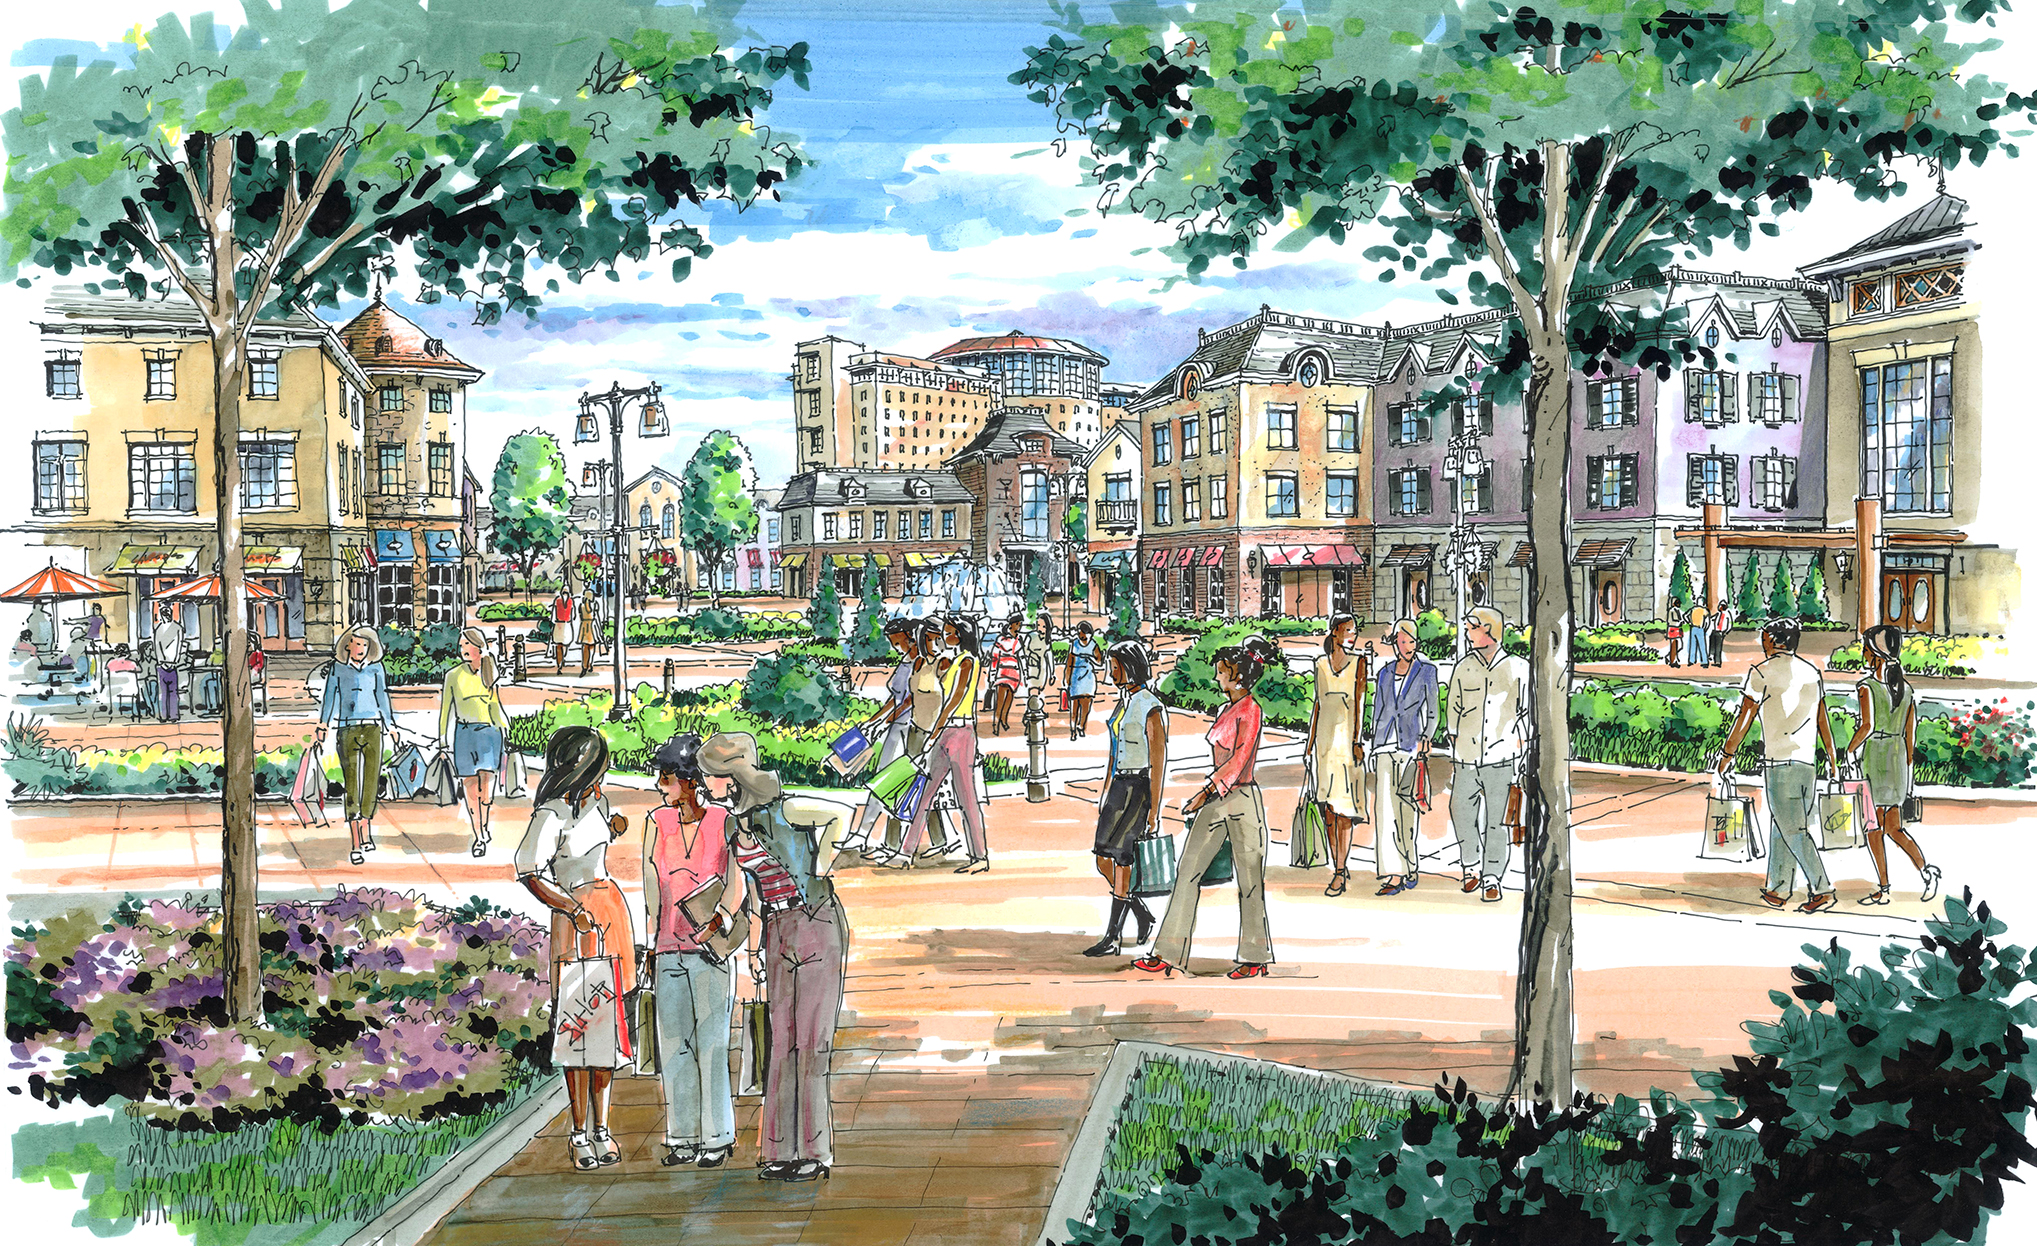 Senior Living, Landscape Architect, THW, THW Atlanta, Top Land Planning, Best Landscape Architects, Land Planners, Master Planning